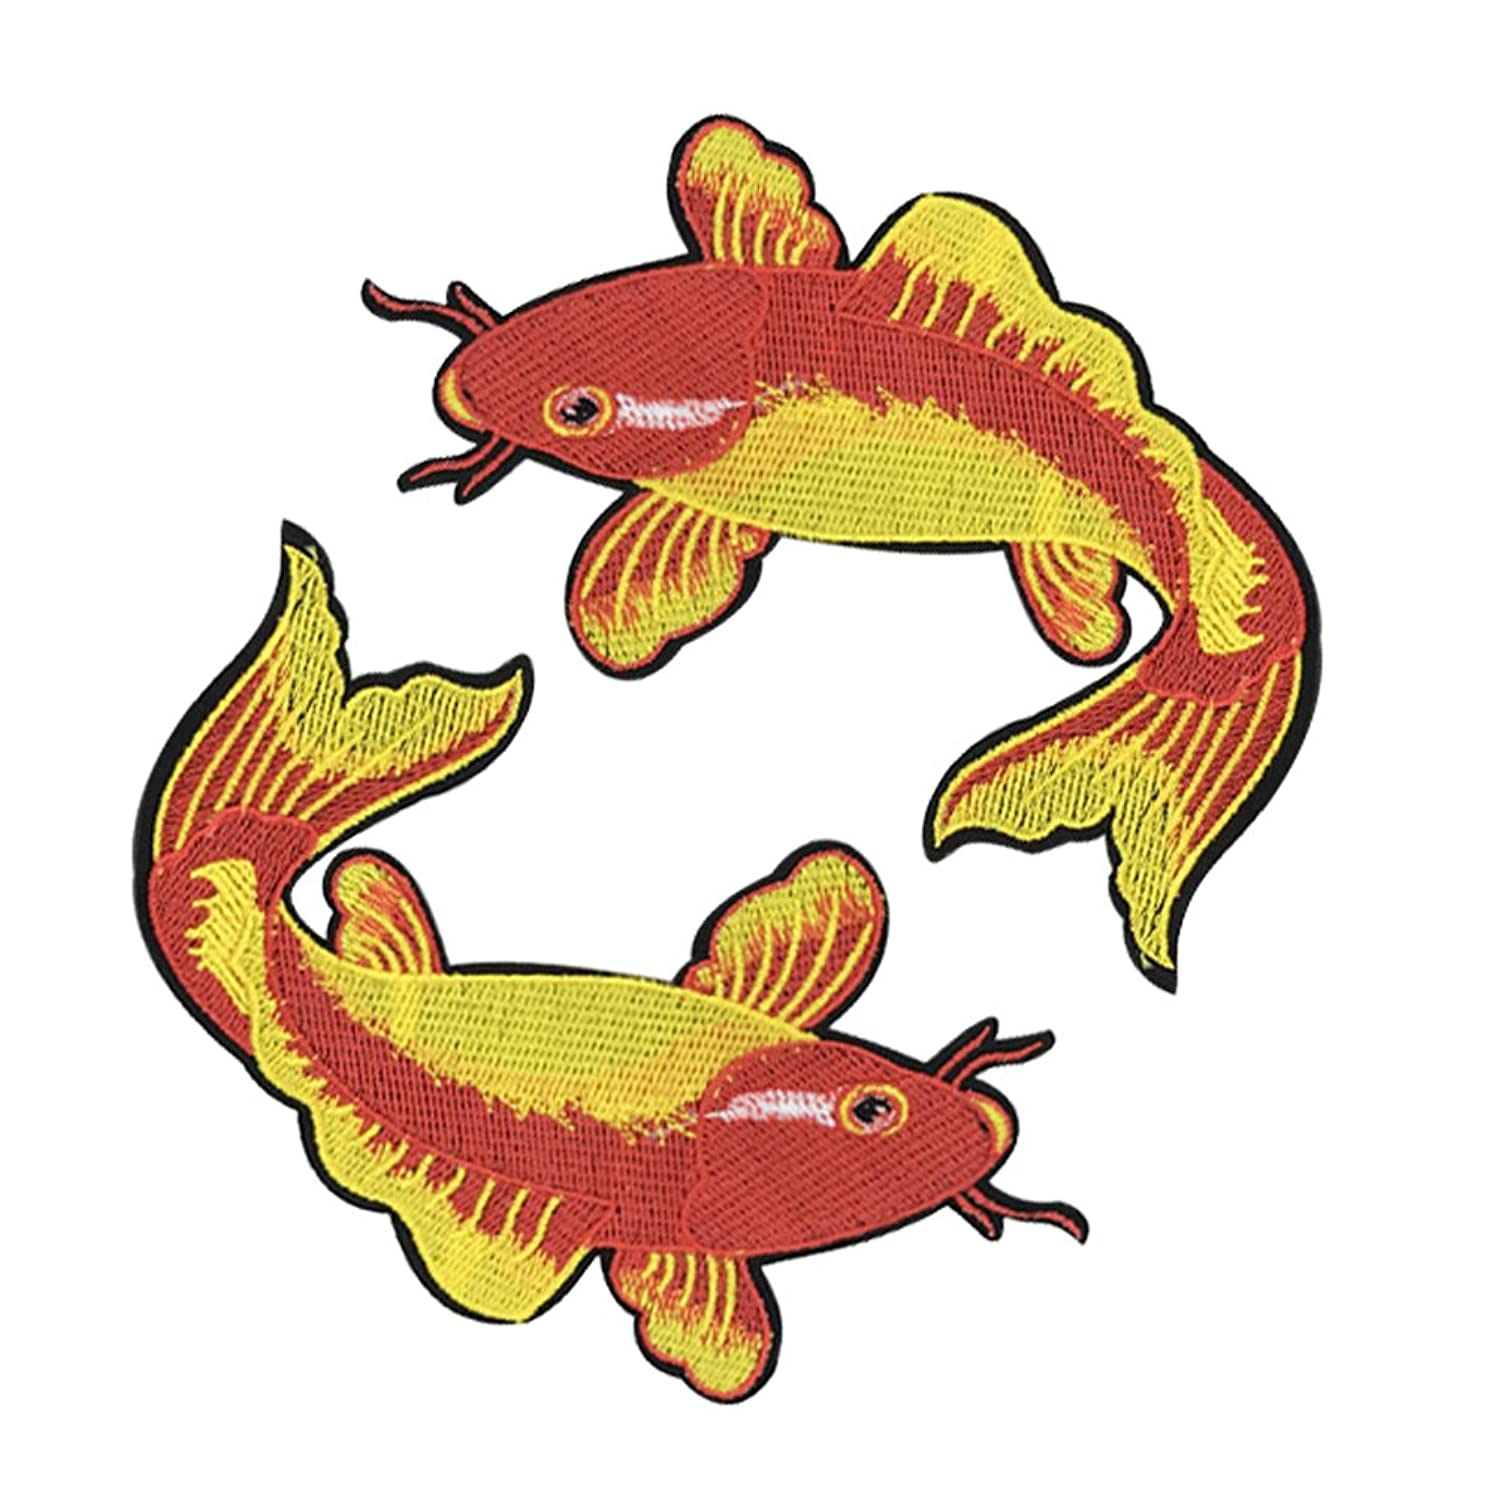 XUNHUI Red Carp Fish Embroidered Patches for Clothes Iron Sewing on Garment Applique DIY Accessories Animal 2 Pieces